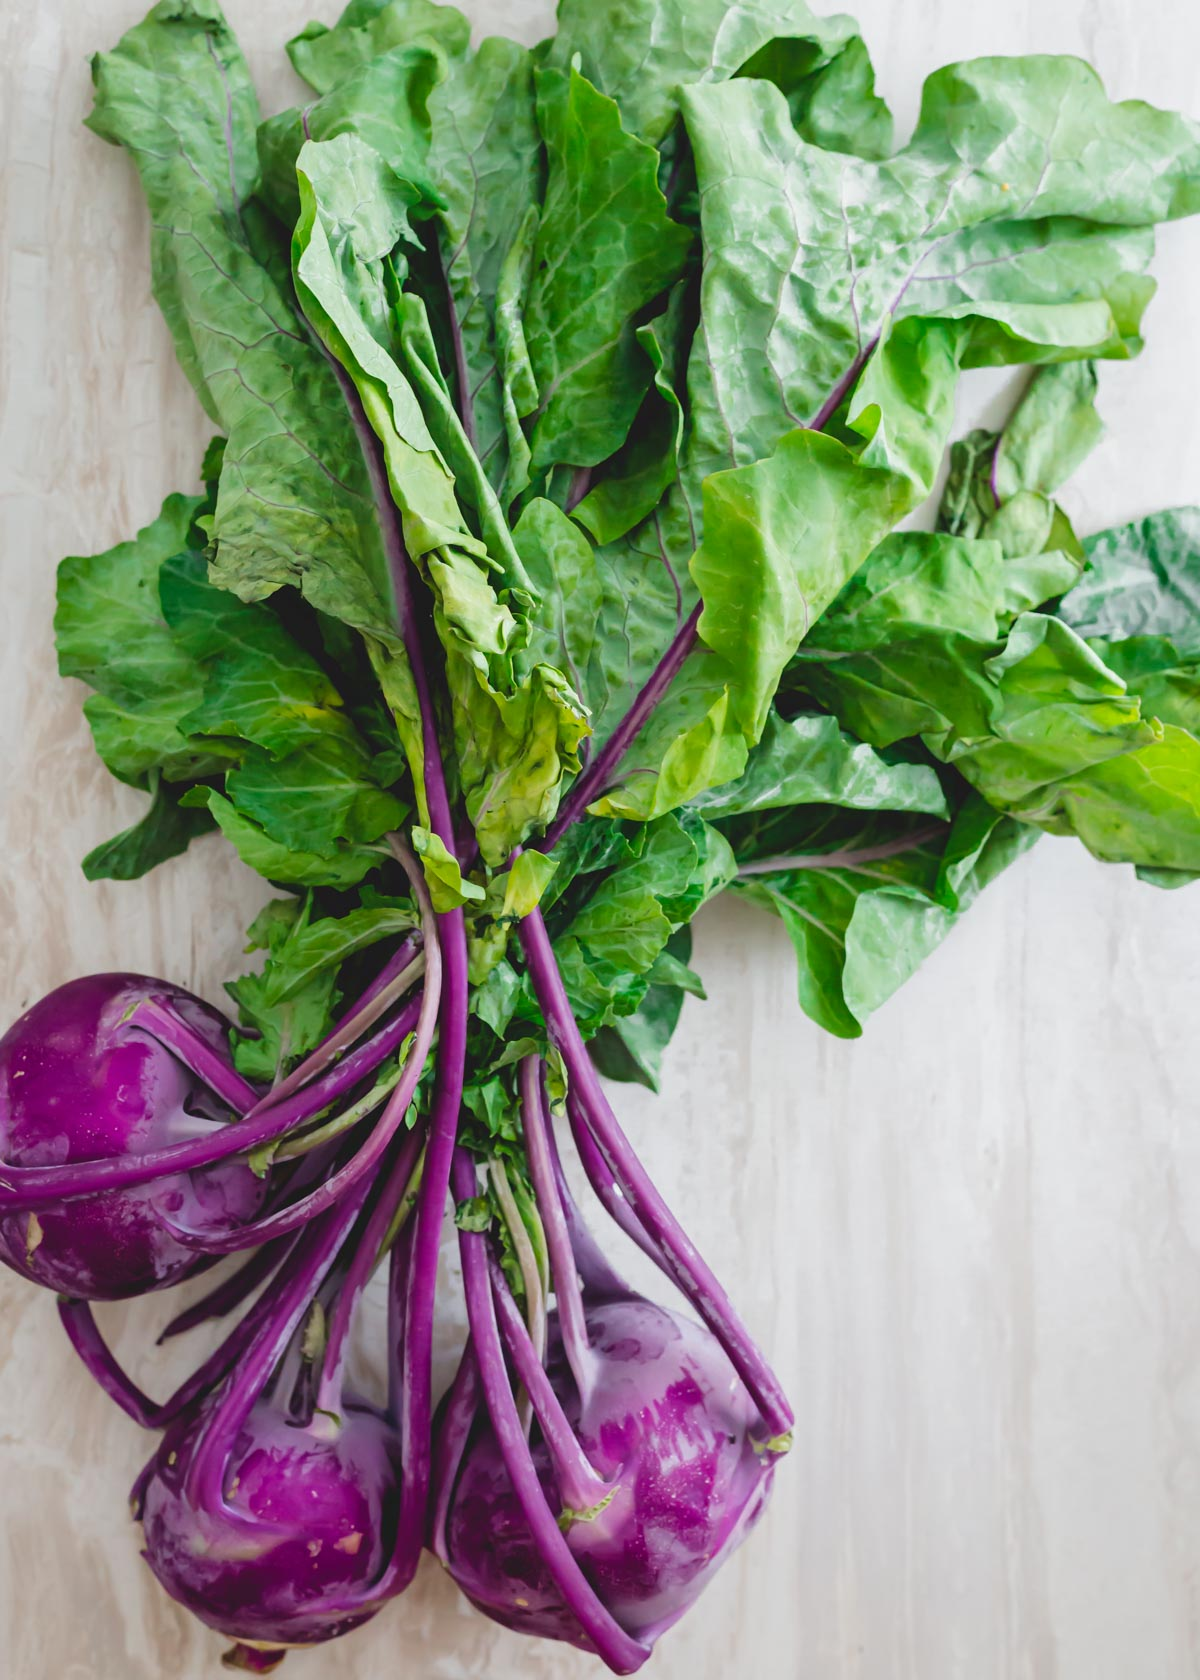 Purple kohlrabi with greens attached.